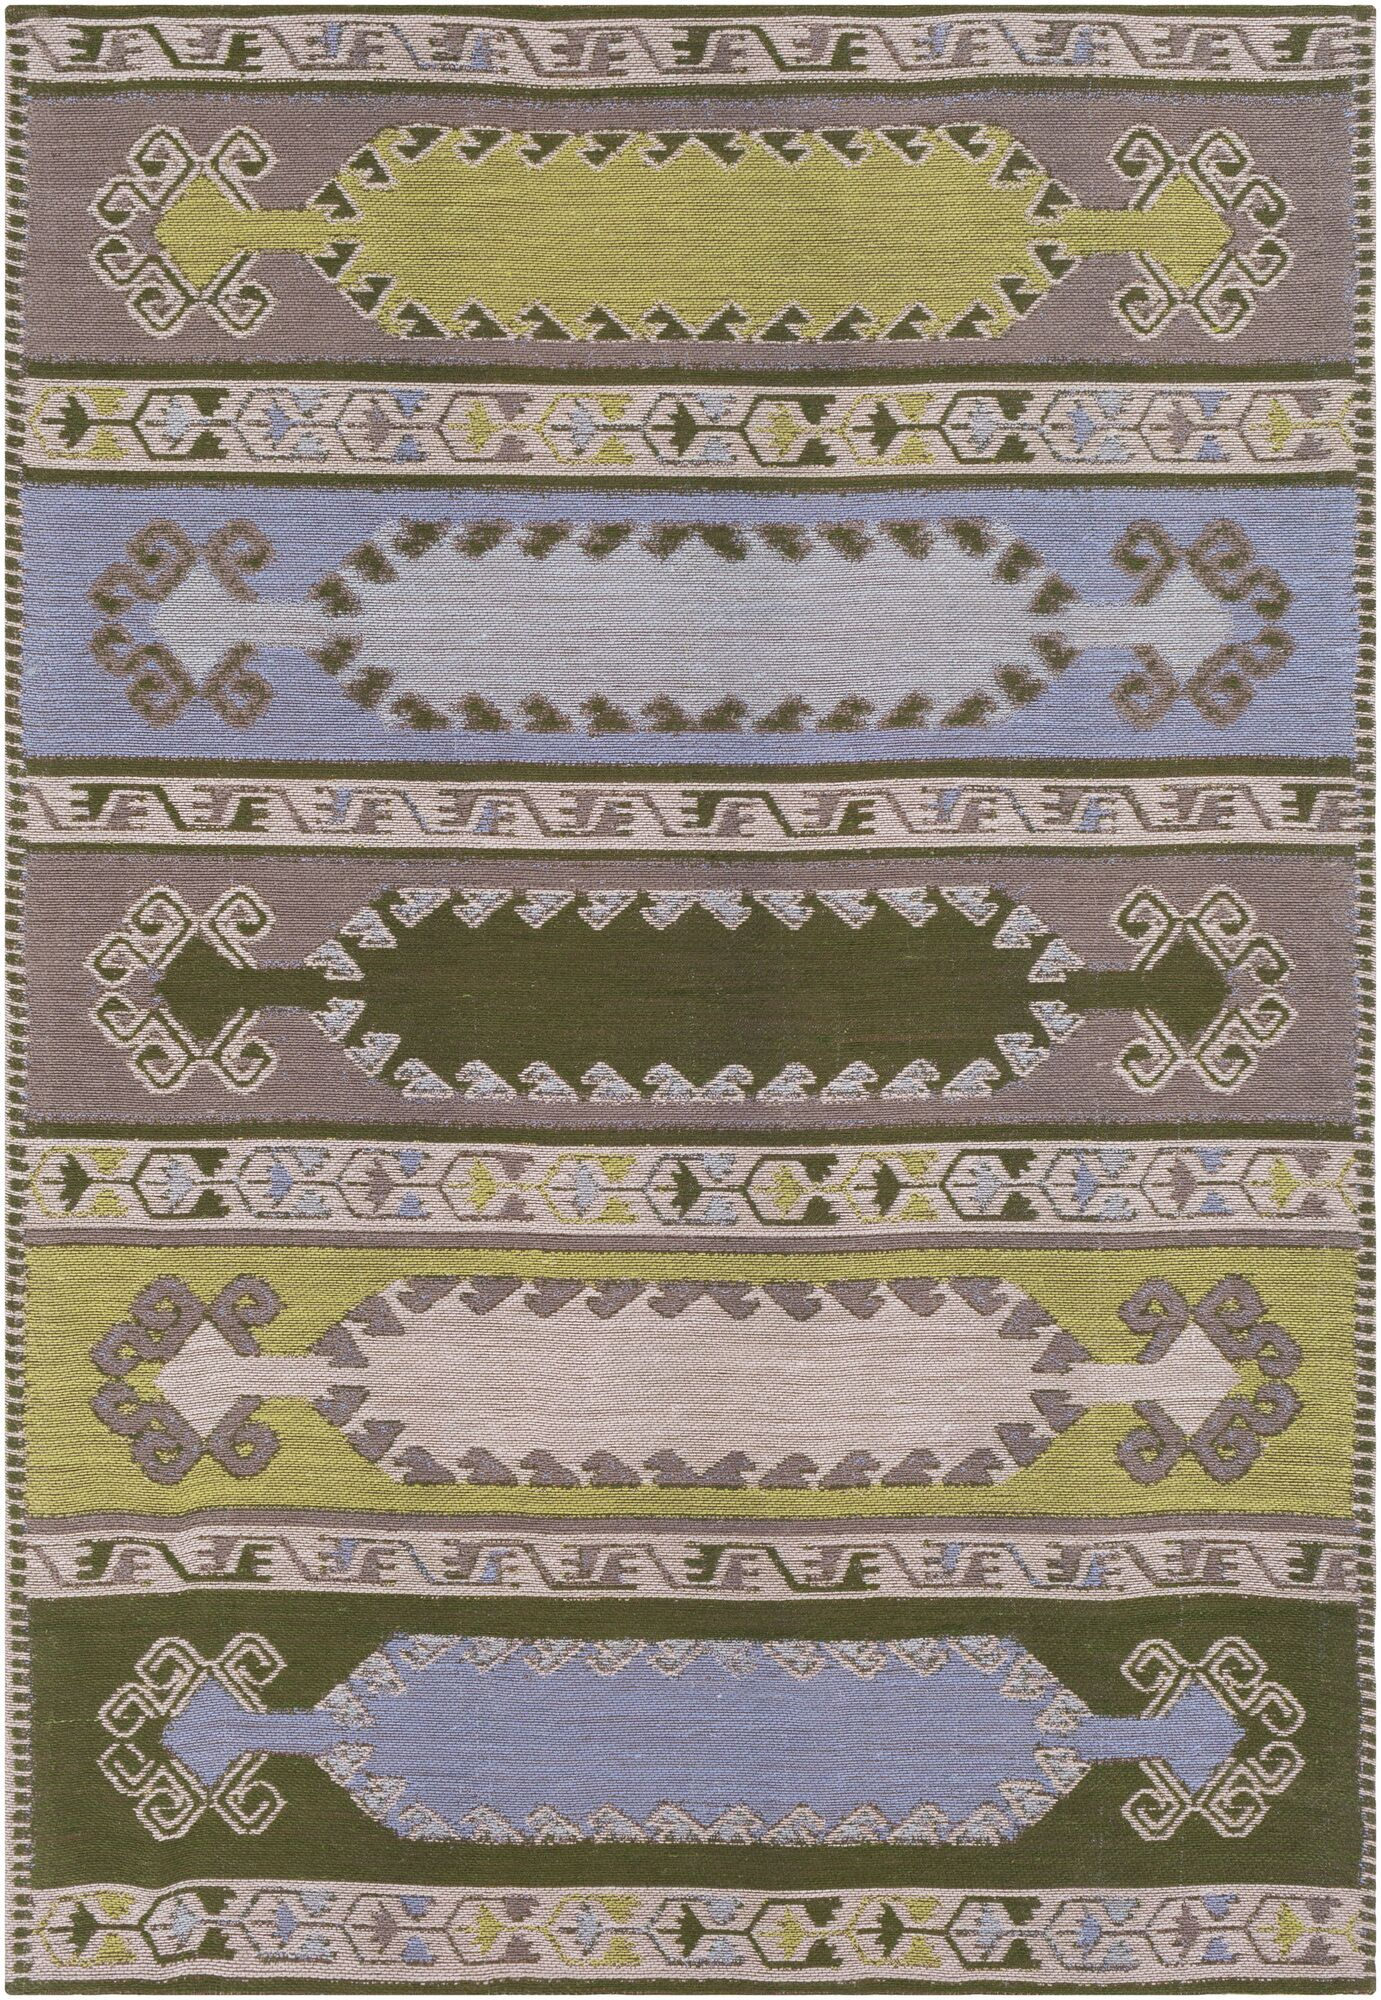 Ridge Manor Transitional Hand Woven Lime/Brown Outdoor Area Rug Rug Size: Rectangle 5' x 7'6